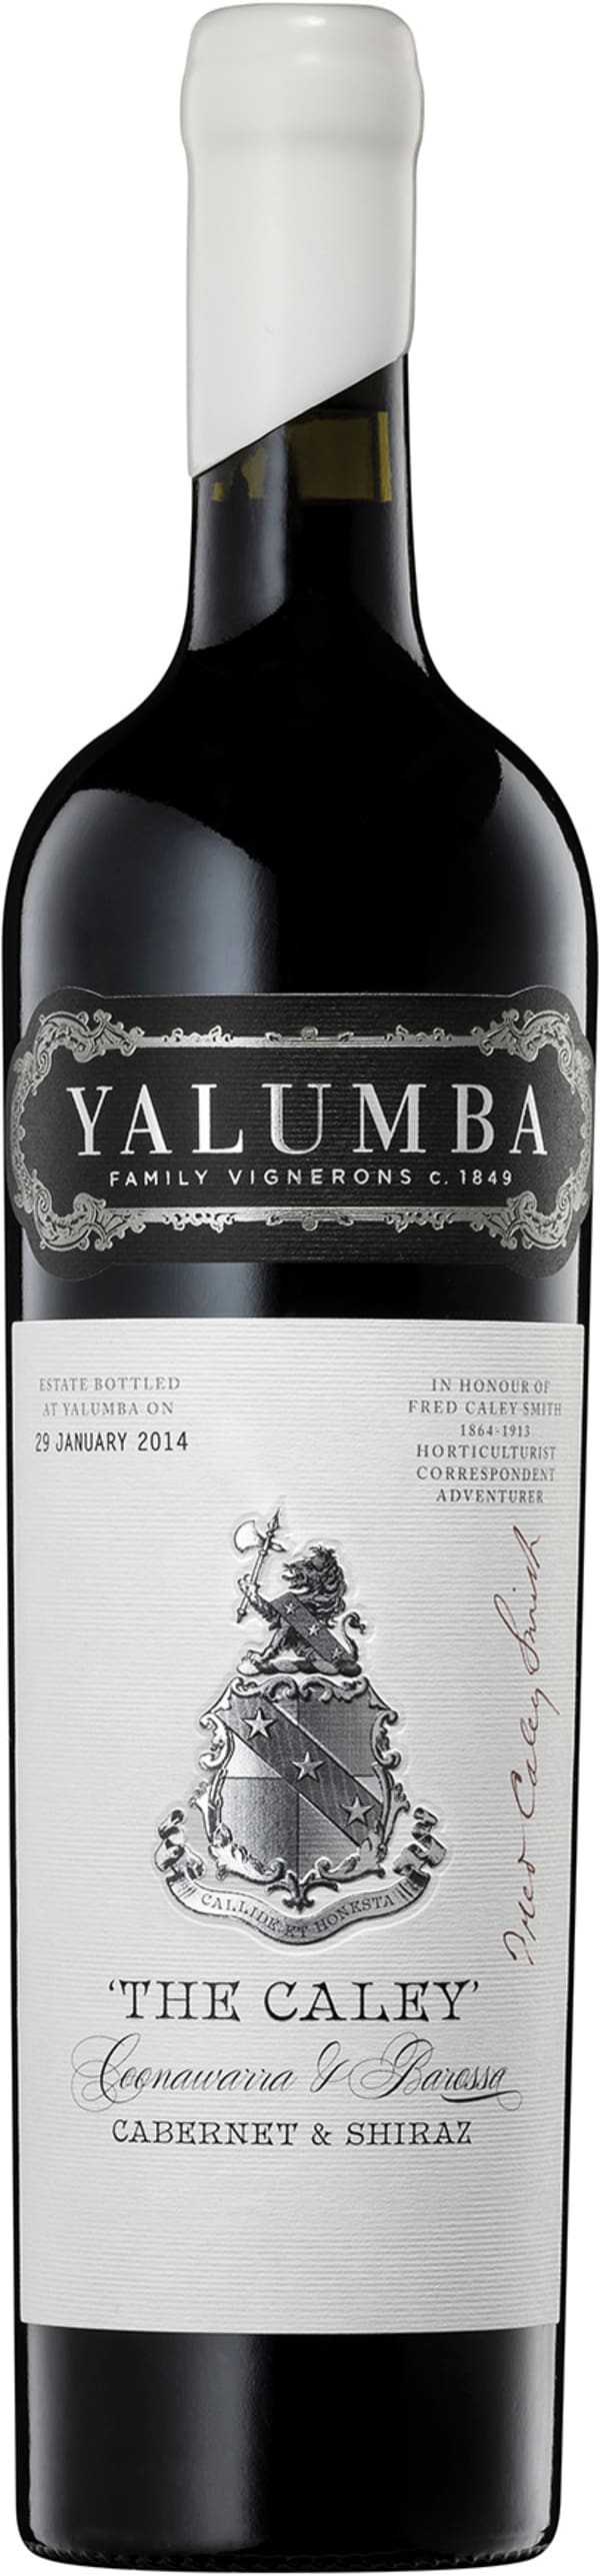 Yalumba The Caley Cabernet Shiraz 2012